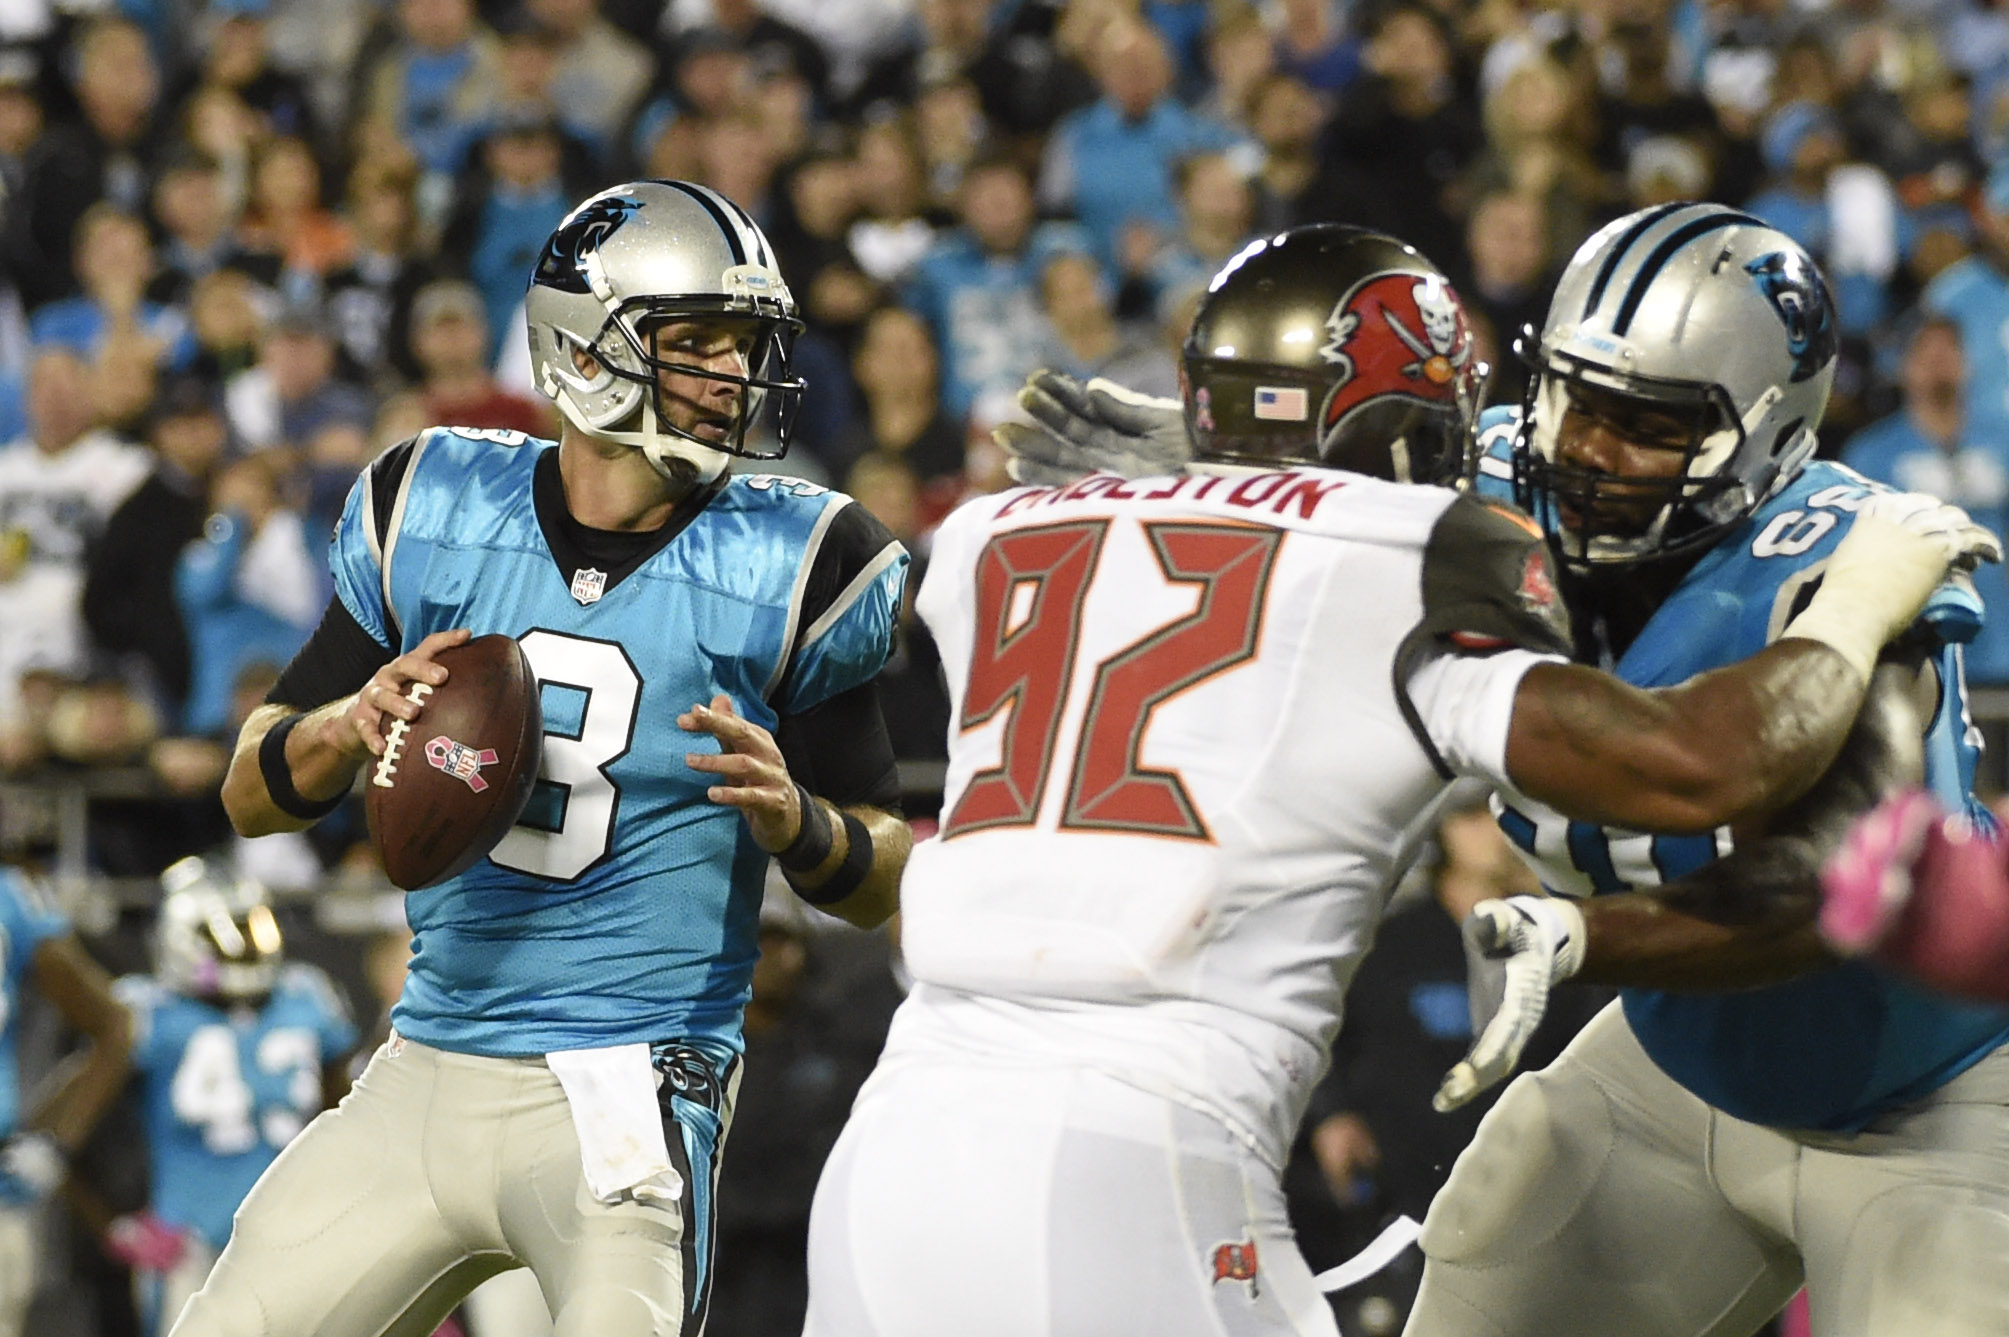 Oct 10, 2016; Charlotte, NC, USA; Carolina Panthers quarterback Derek Anderson (3) looks to pass as Tampa Bay Buccaneers defensive end William Gholston (92) pressures in the third quarter. The Buccaneers defeated the Panthers 17-14 at Bank of America Stadium. Mandatory Credit: Bob Donnan-USA TODAY Sports